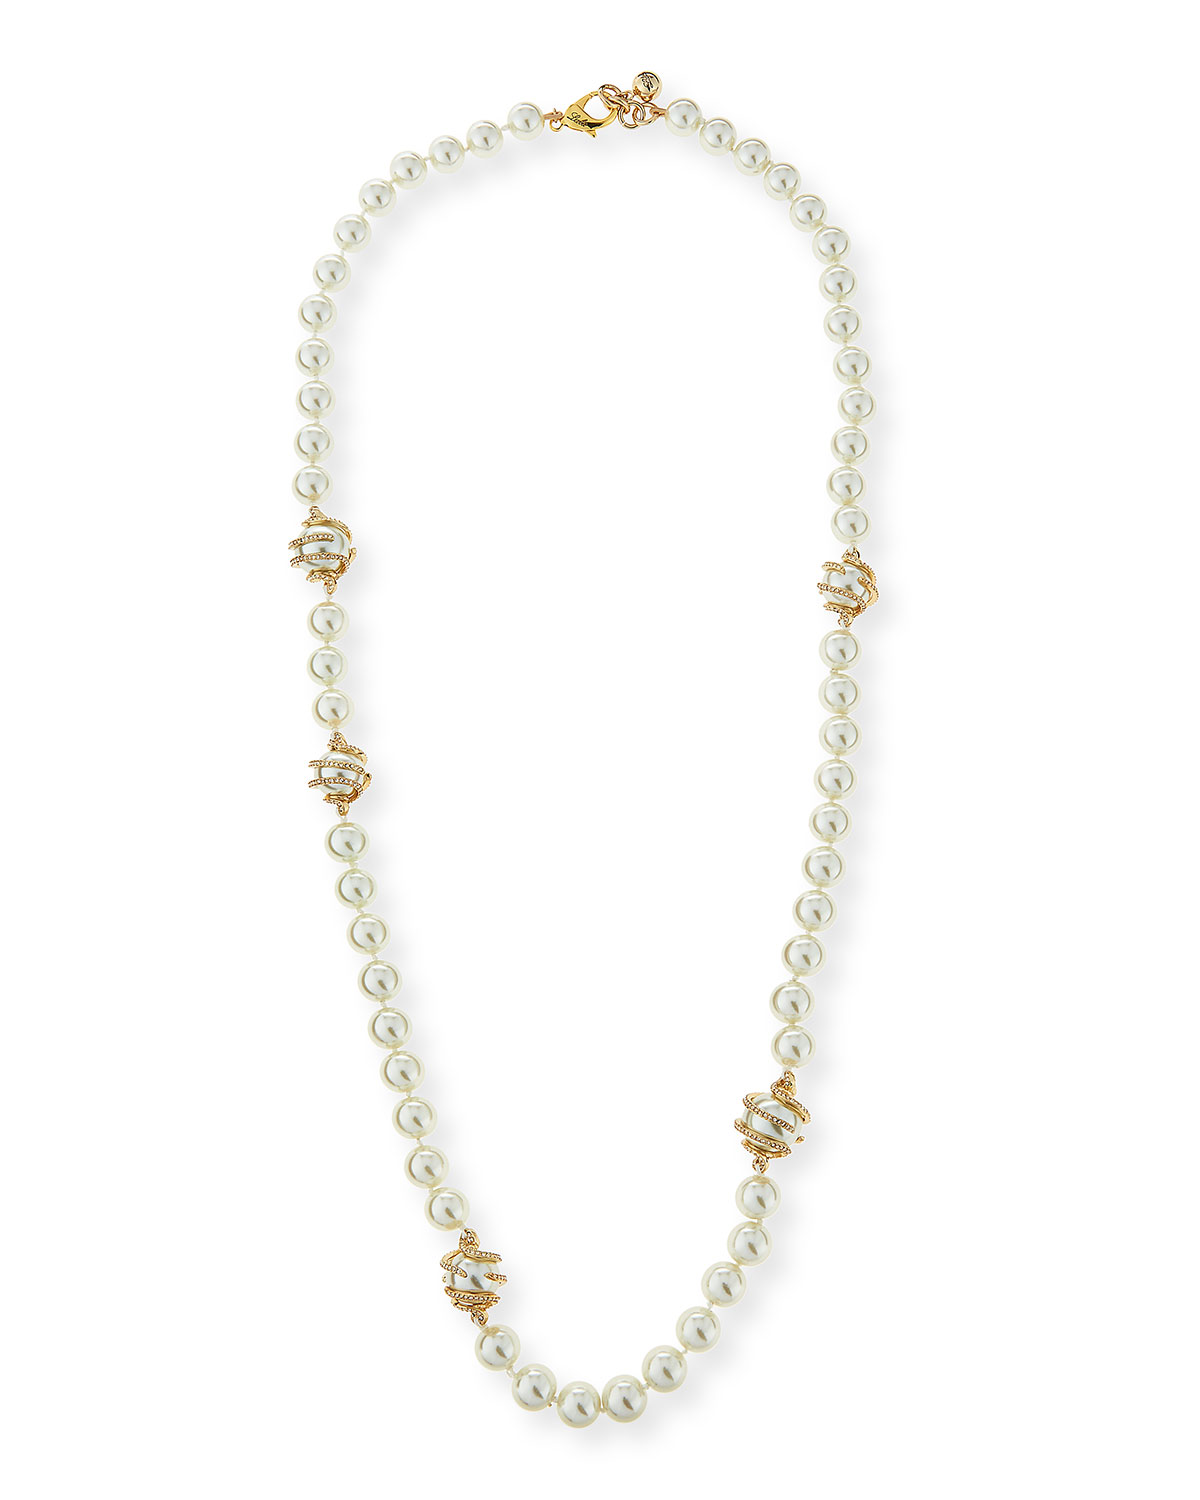 Simulated-Pearl Necklace with Coiled Crystals, 36